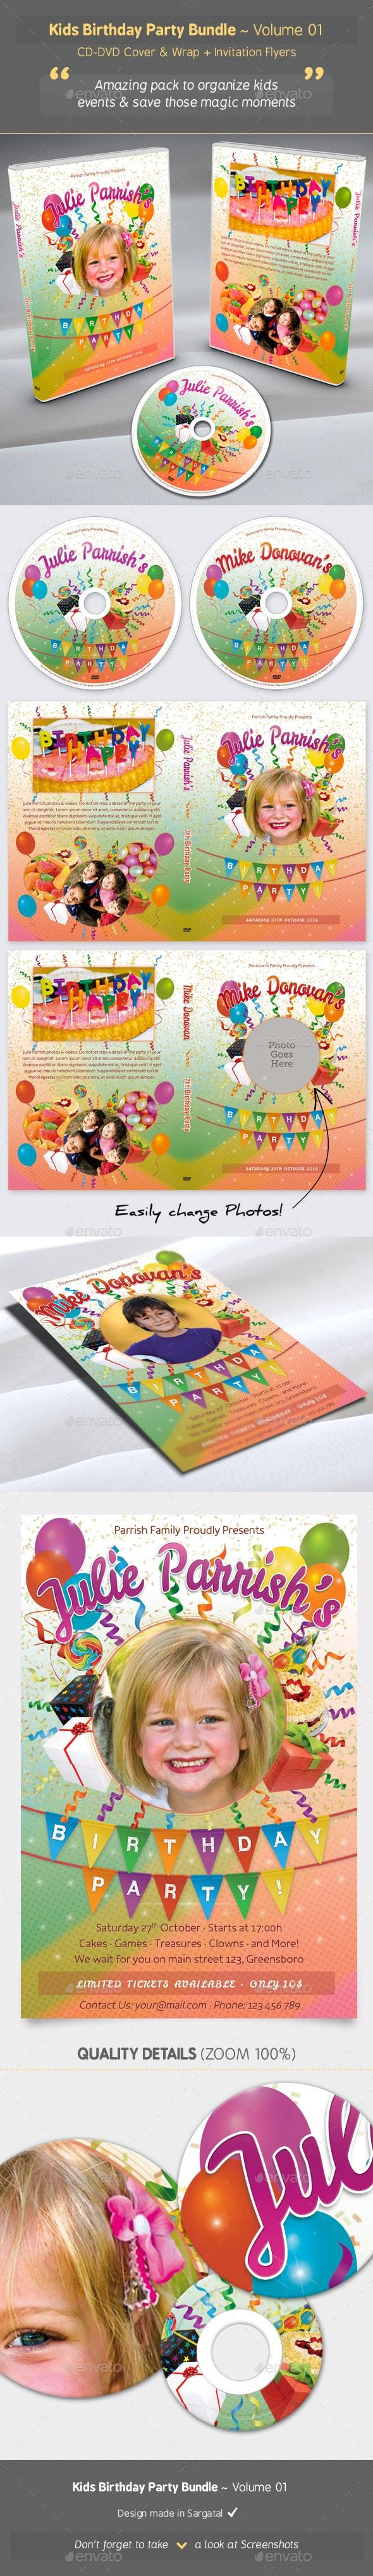 GraphicRiver Kids Birthday Party Bundle Volume 01 20668382